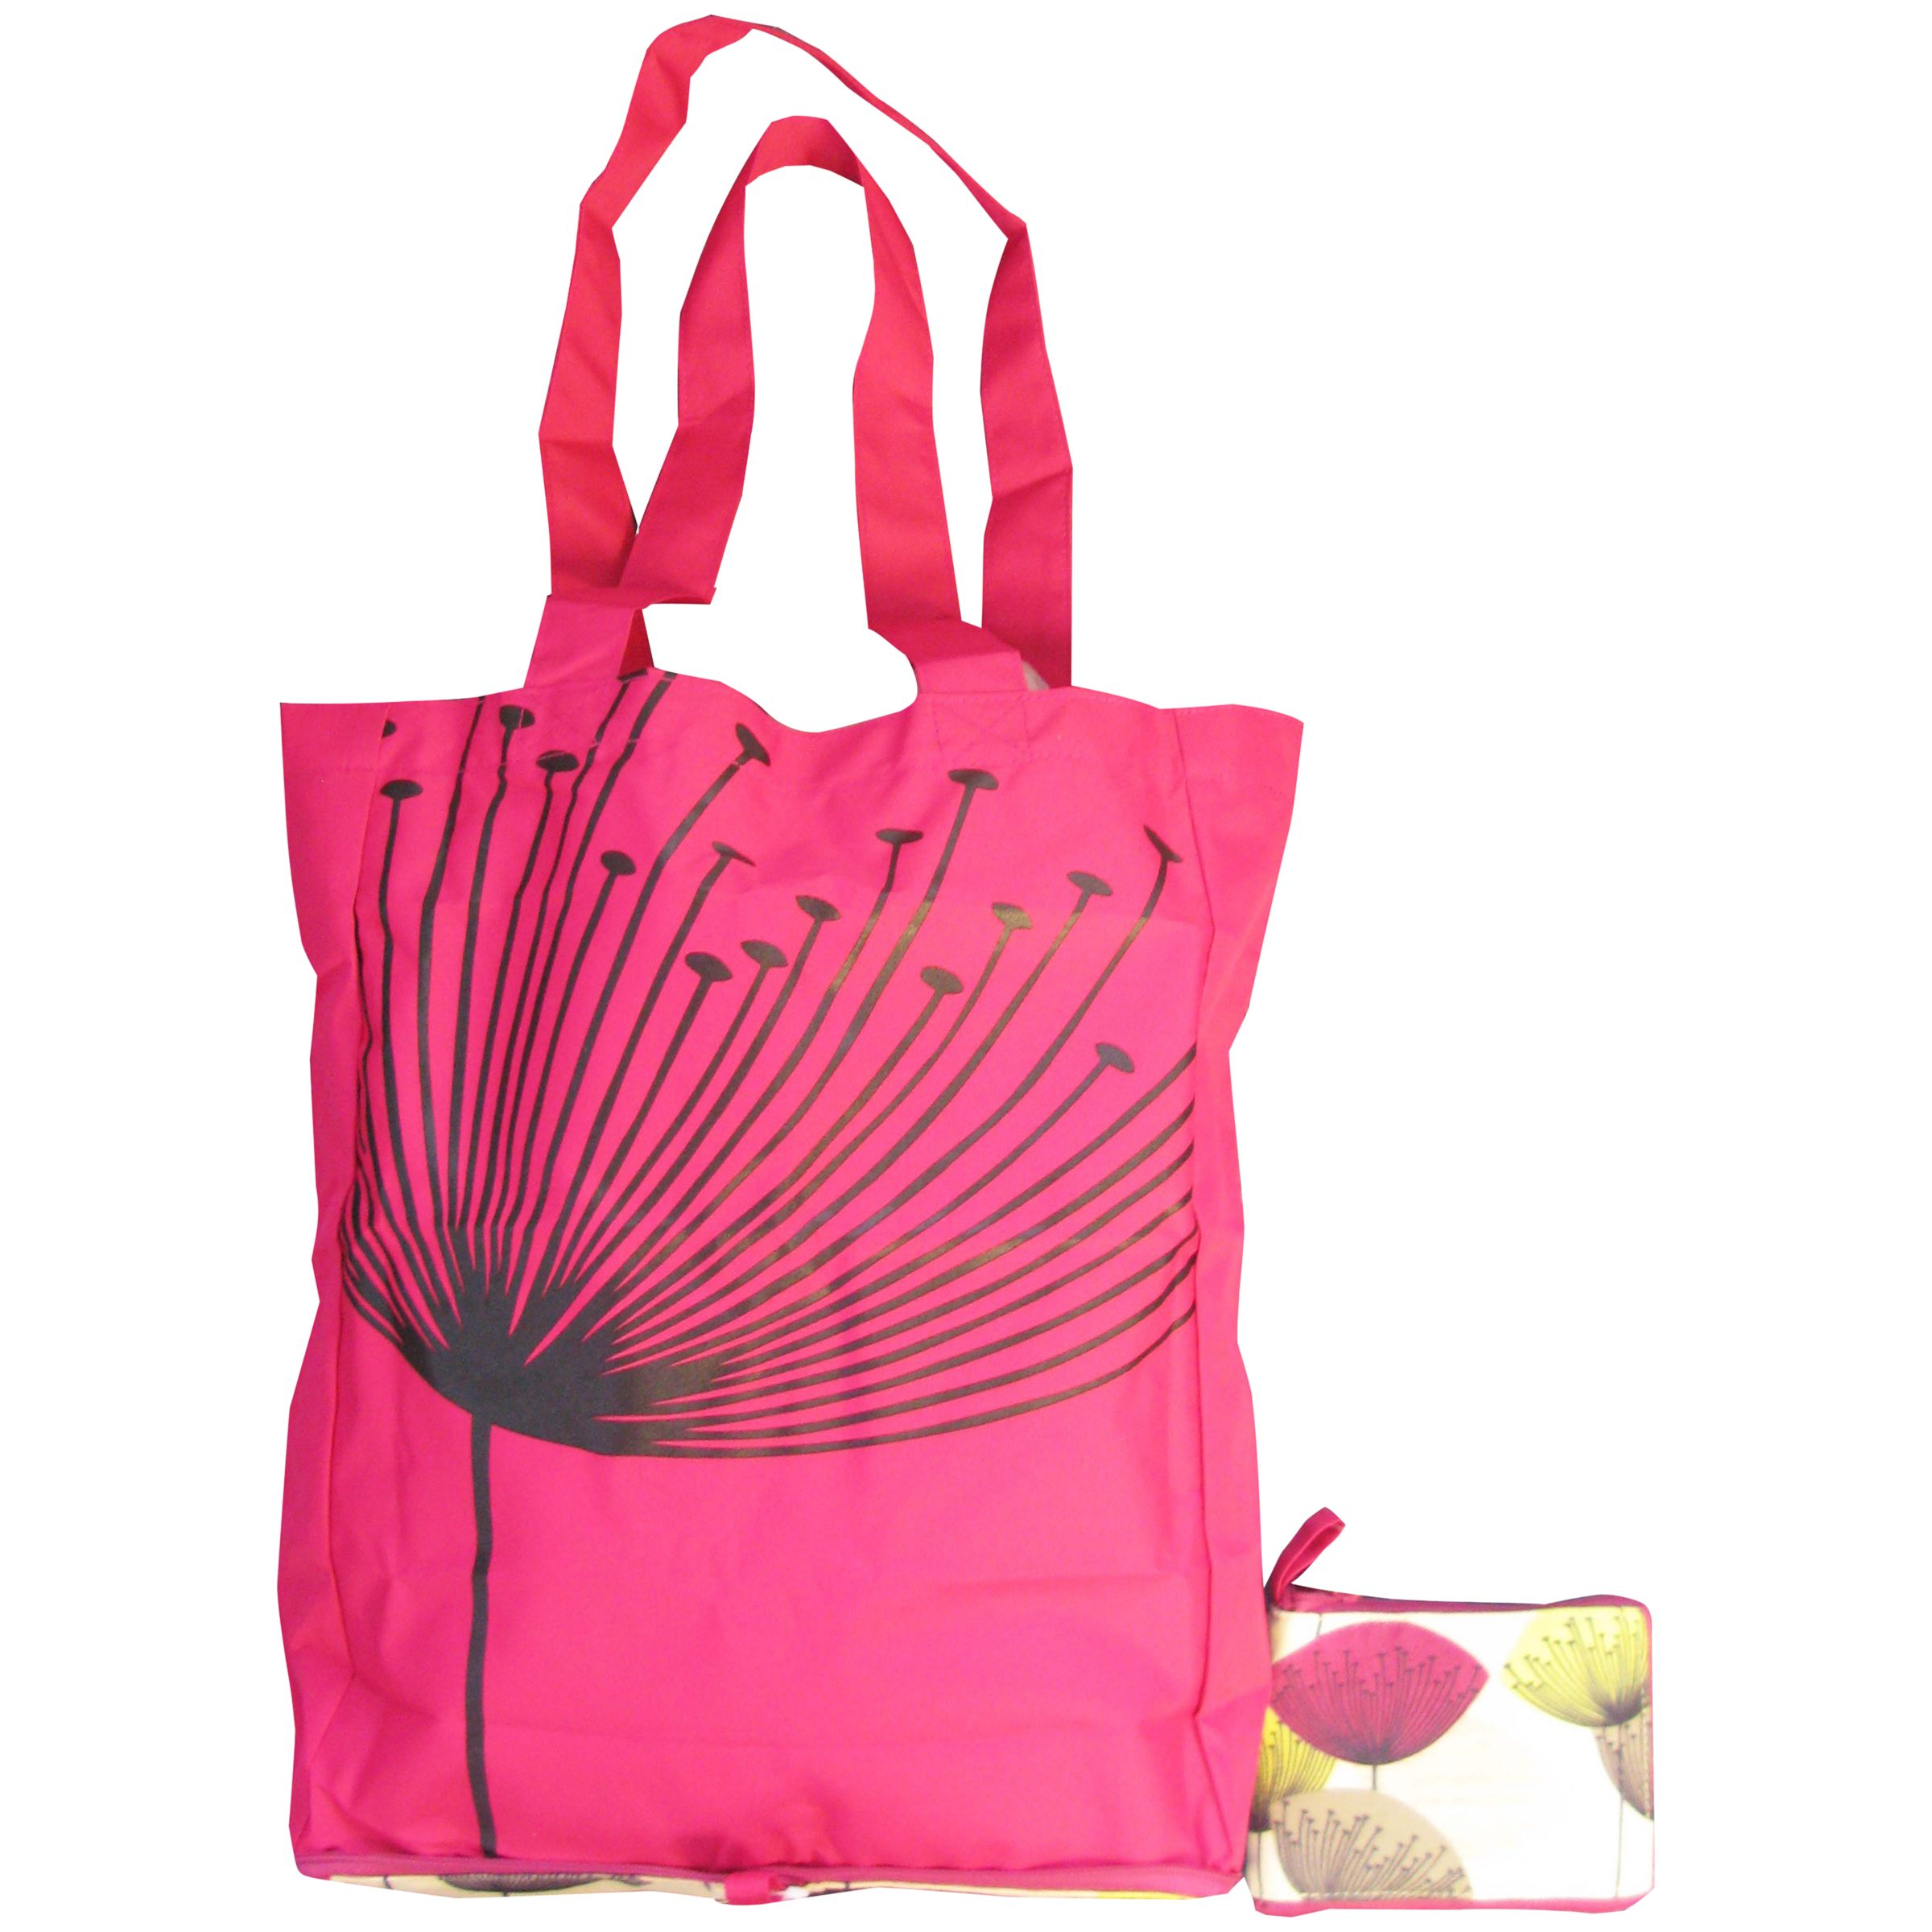 Sanderson Dandelion Clocks Foldaway Shopping Bag, Pink